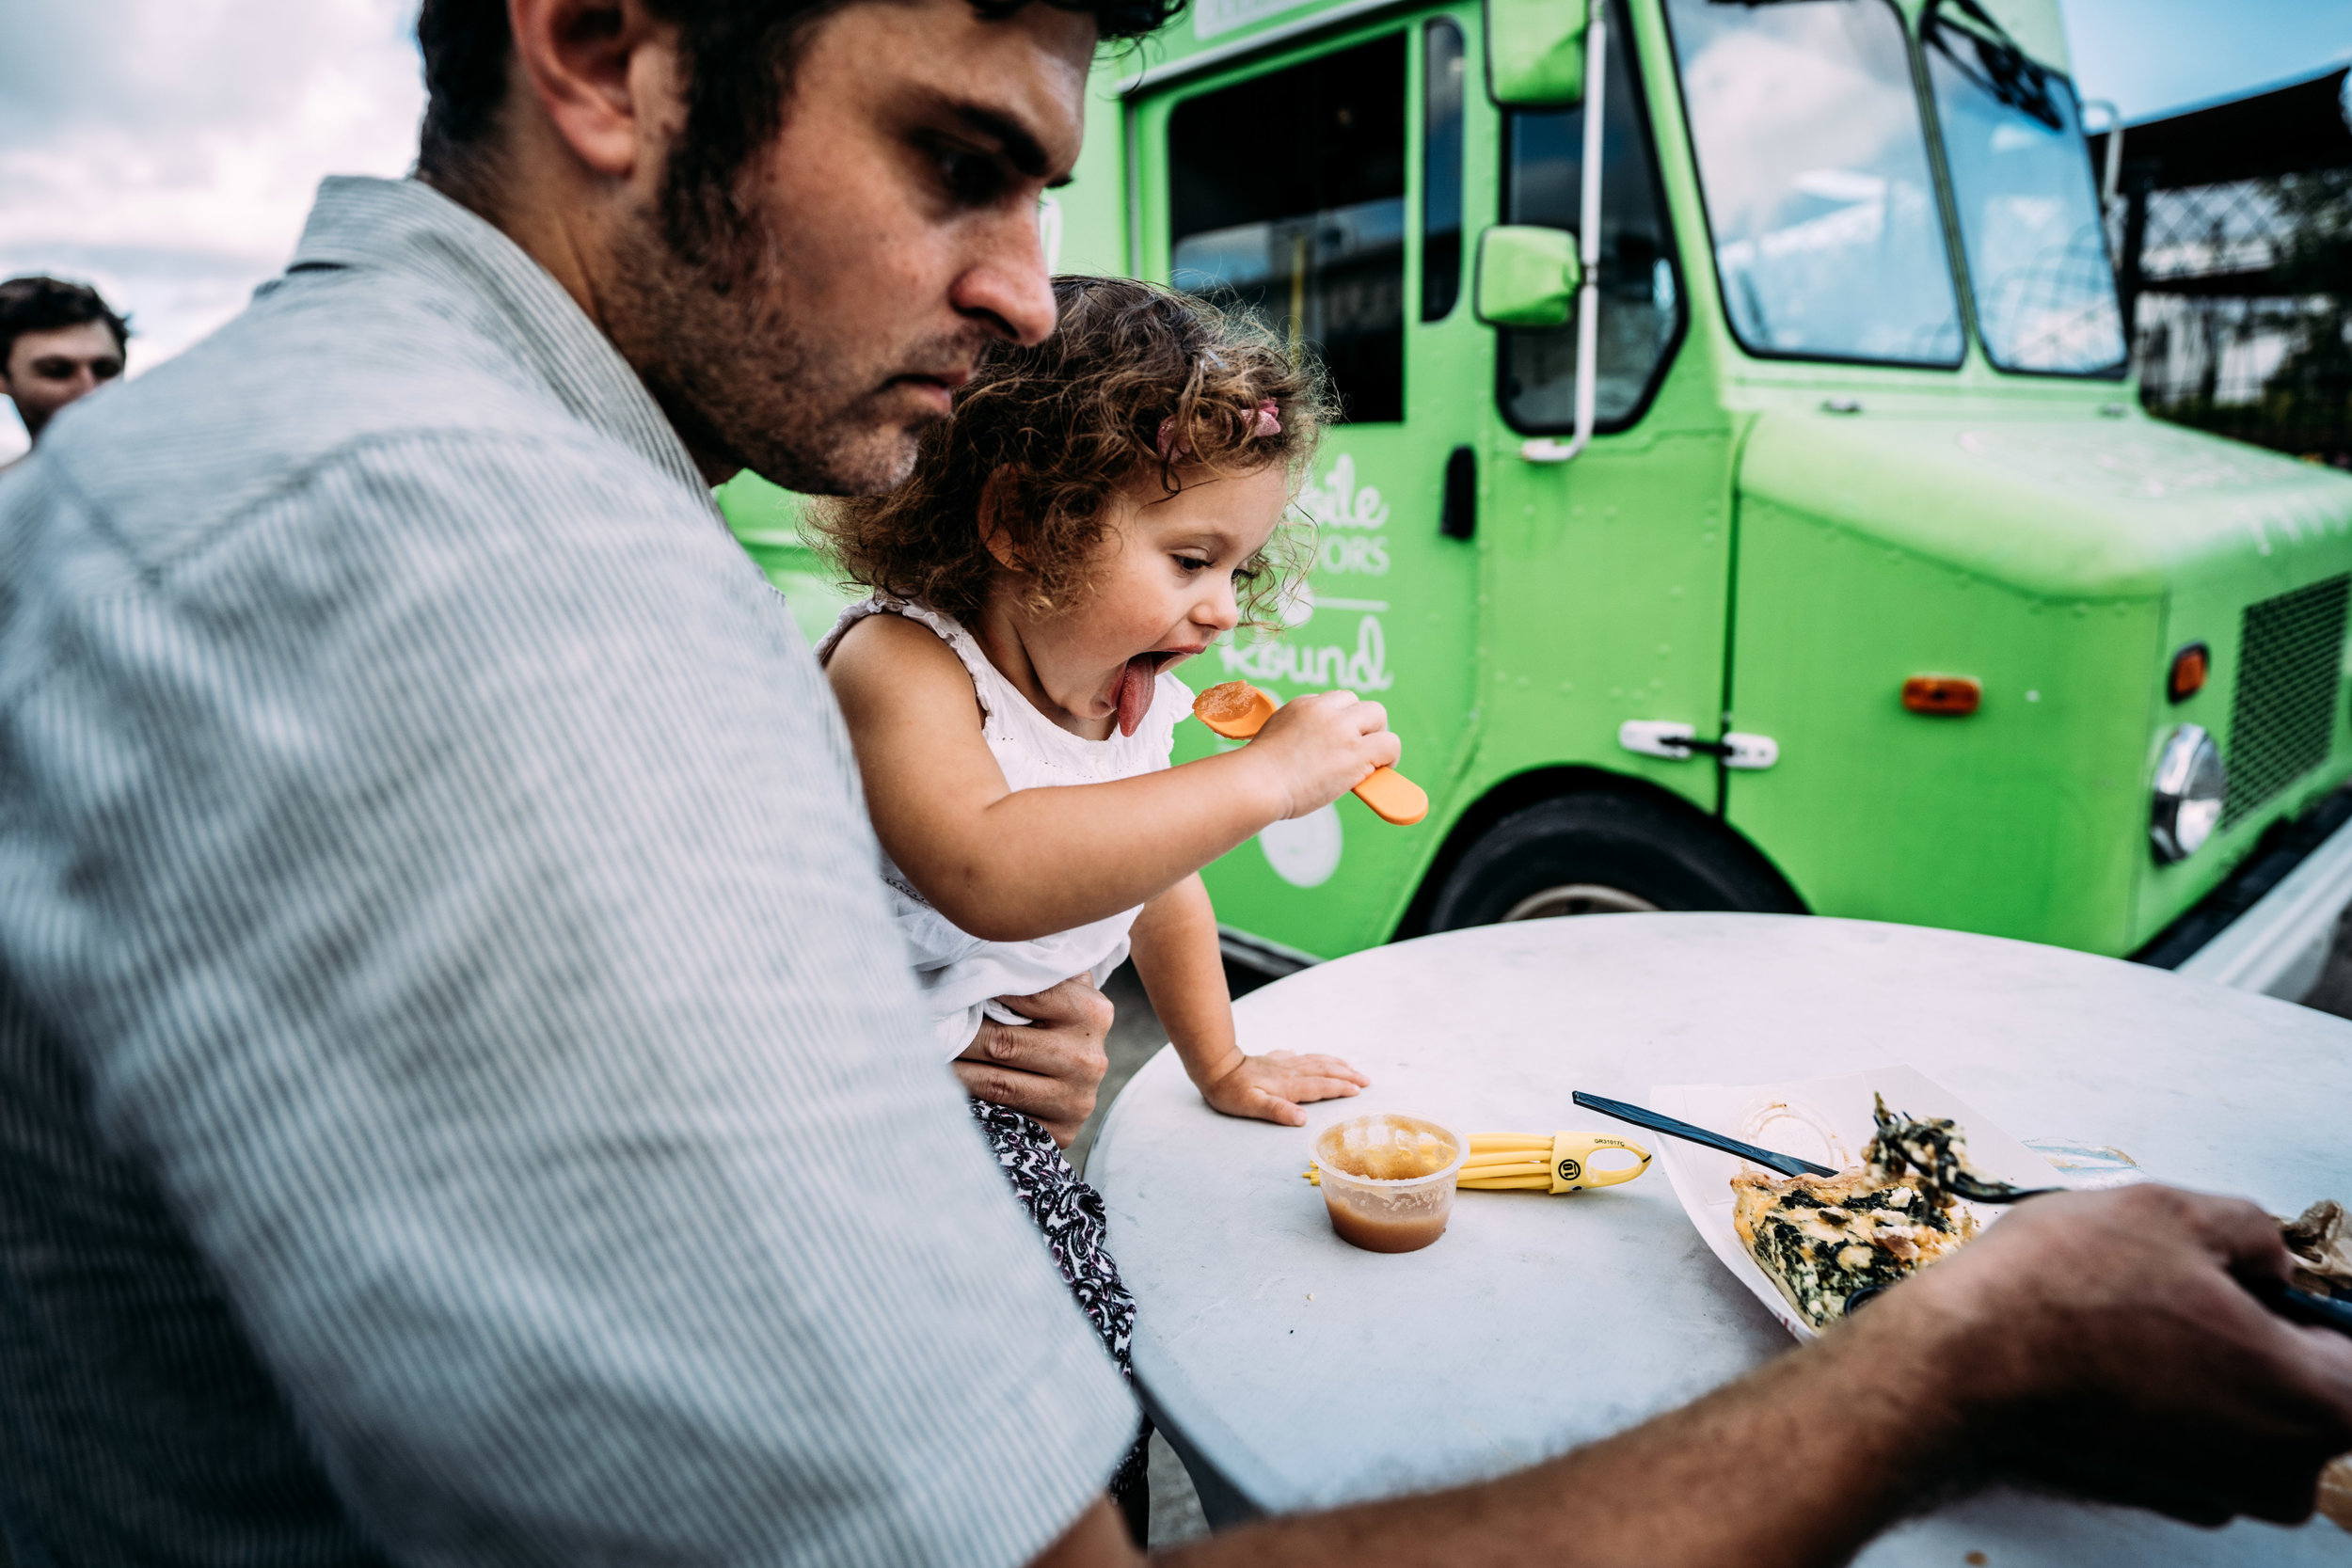 Daddy and daughter eat lunch together